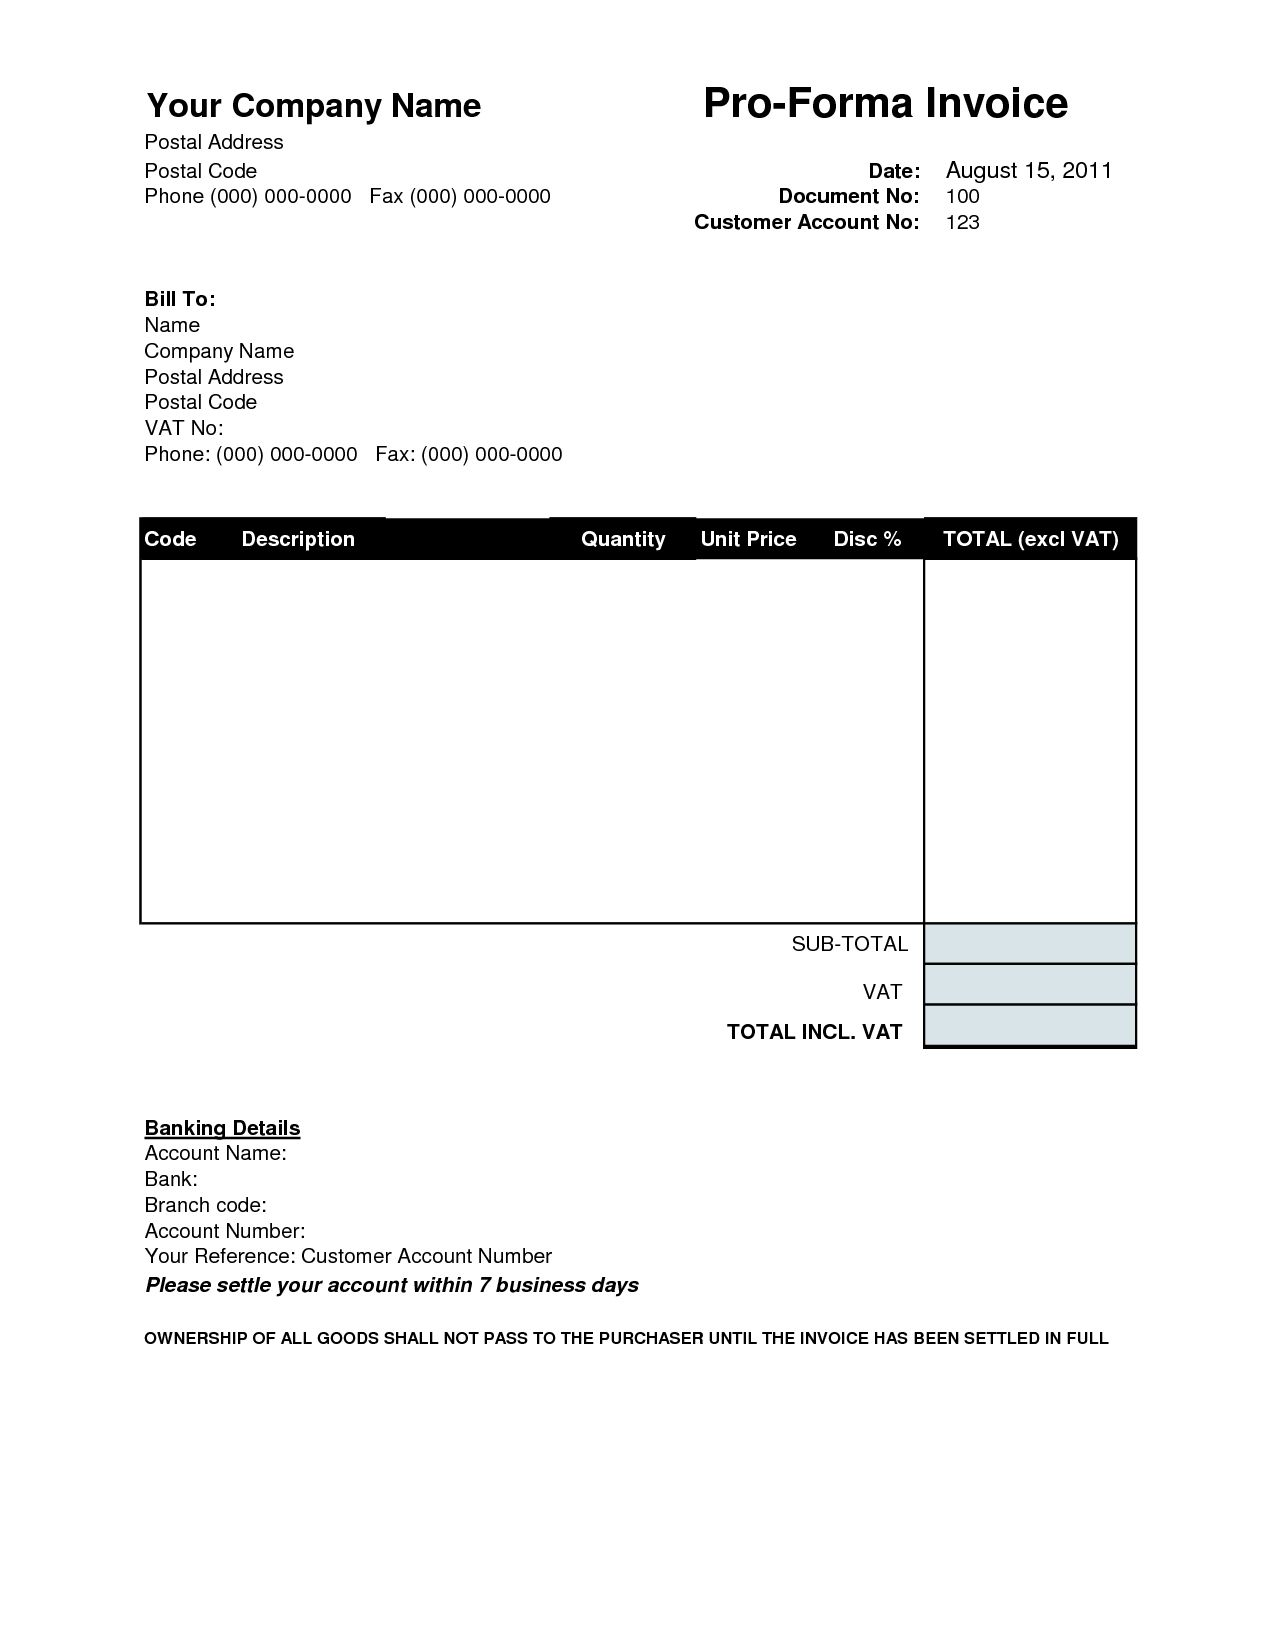 Proforma Invoice Sample Invoice Template Ideas Performa Invoice